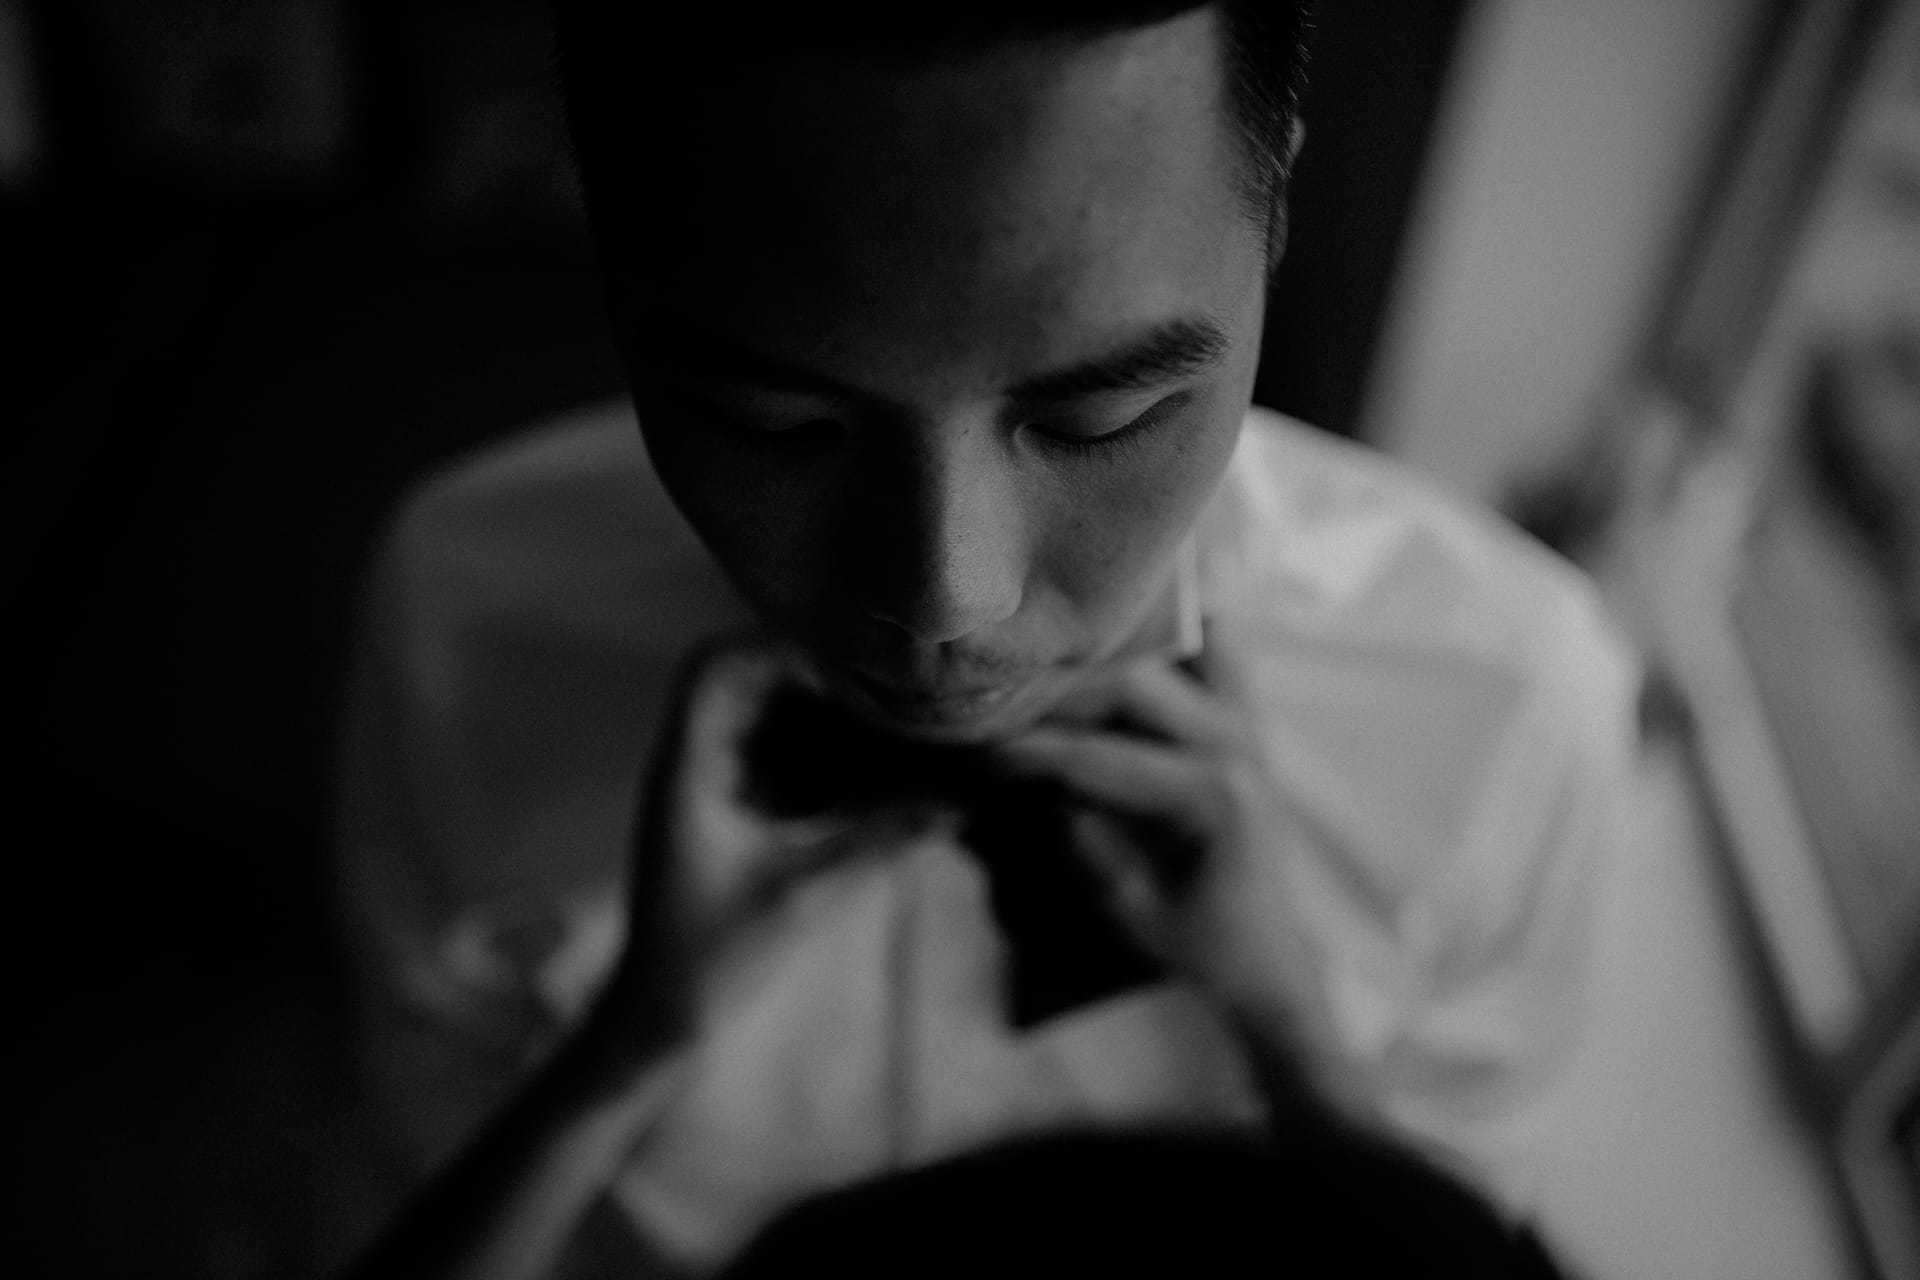 This closeup shows the groom getting his bow tie tied.